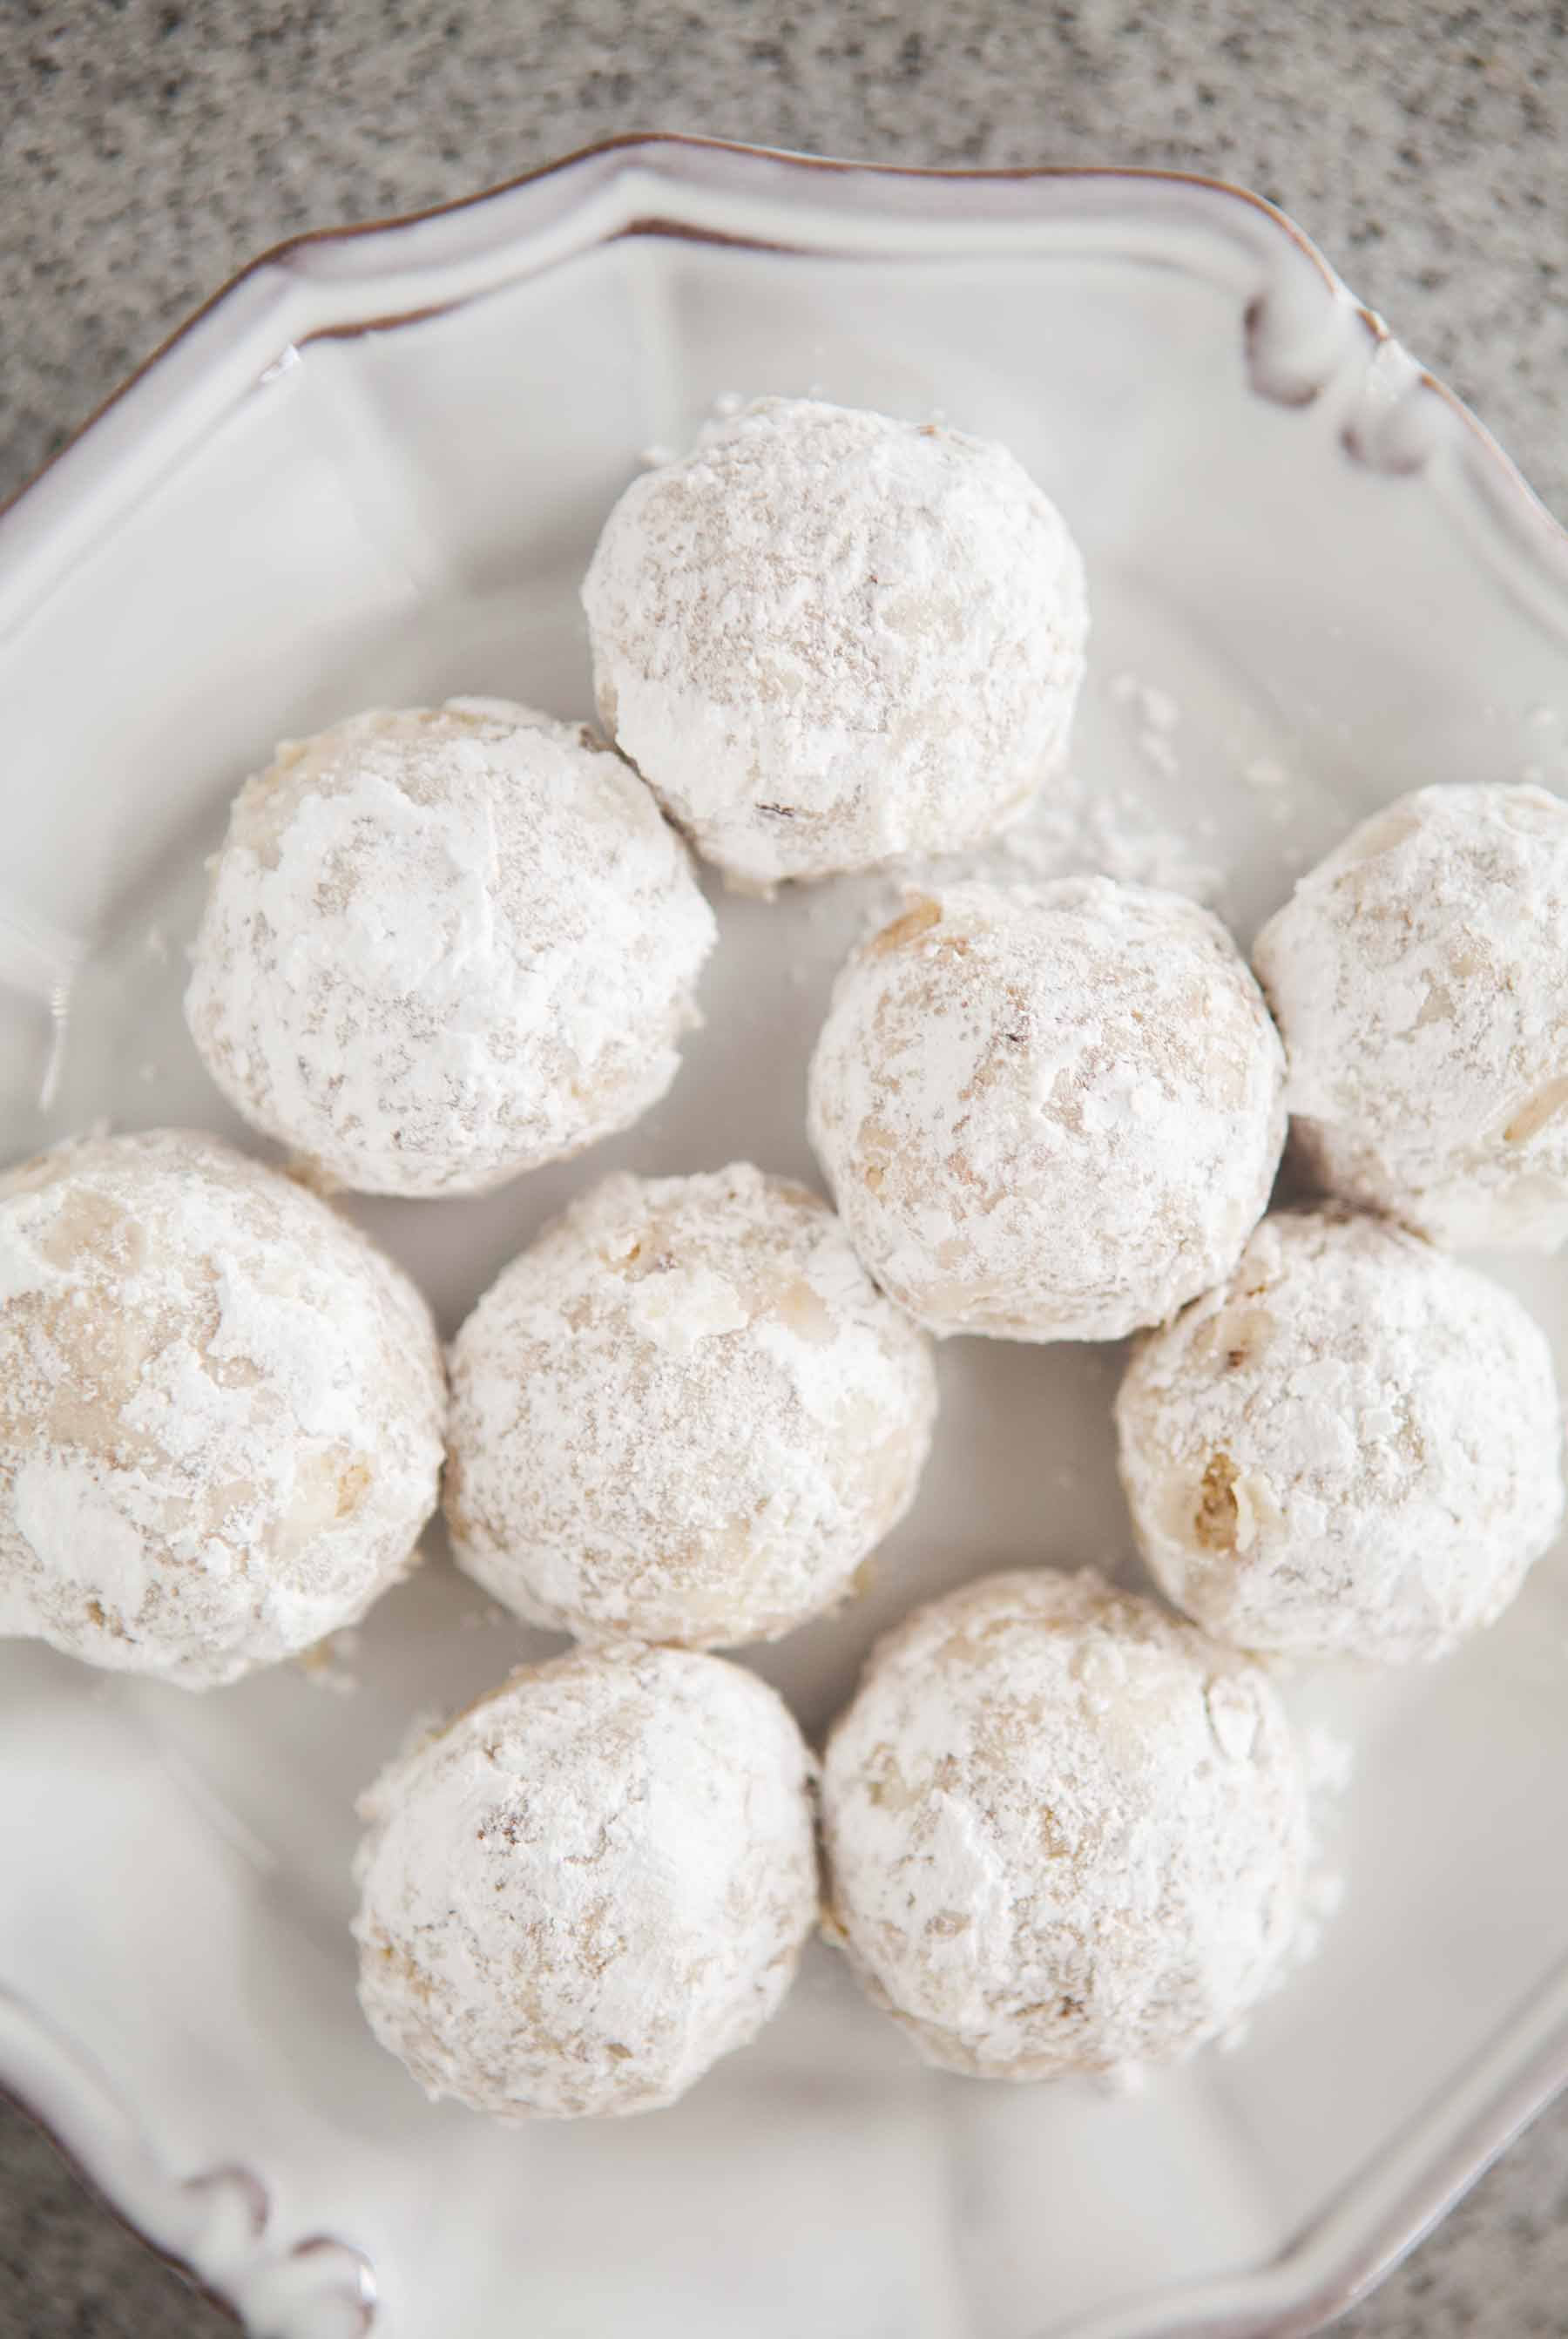 festive holiday snowball cookies made with finely chopped walnuts flour and vanilla rolled into balls and dusted with powdered sugar